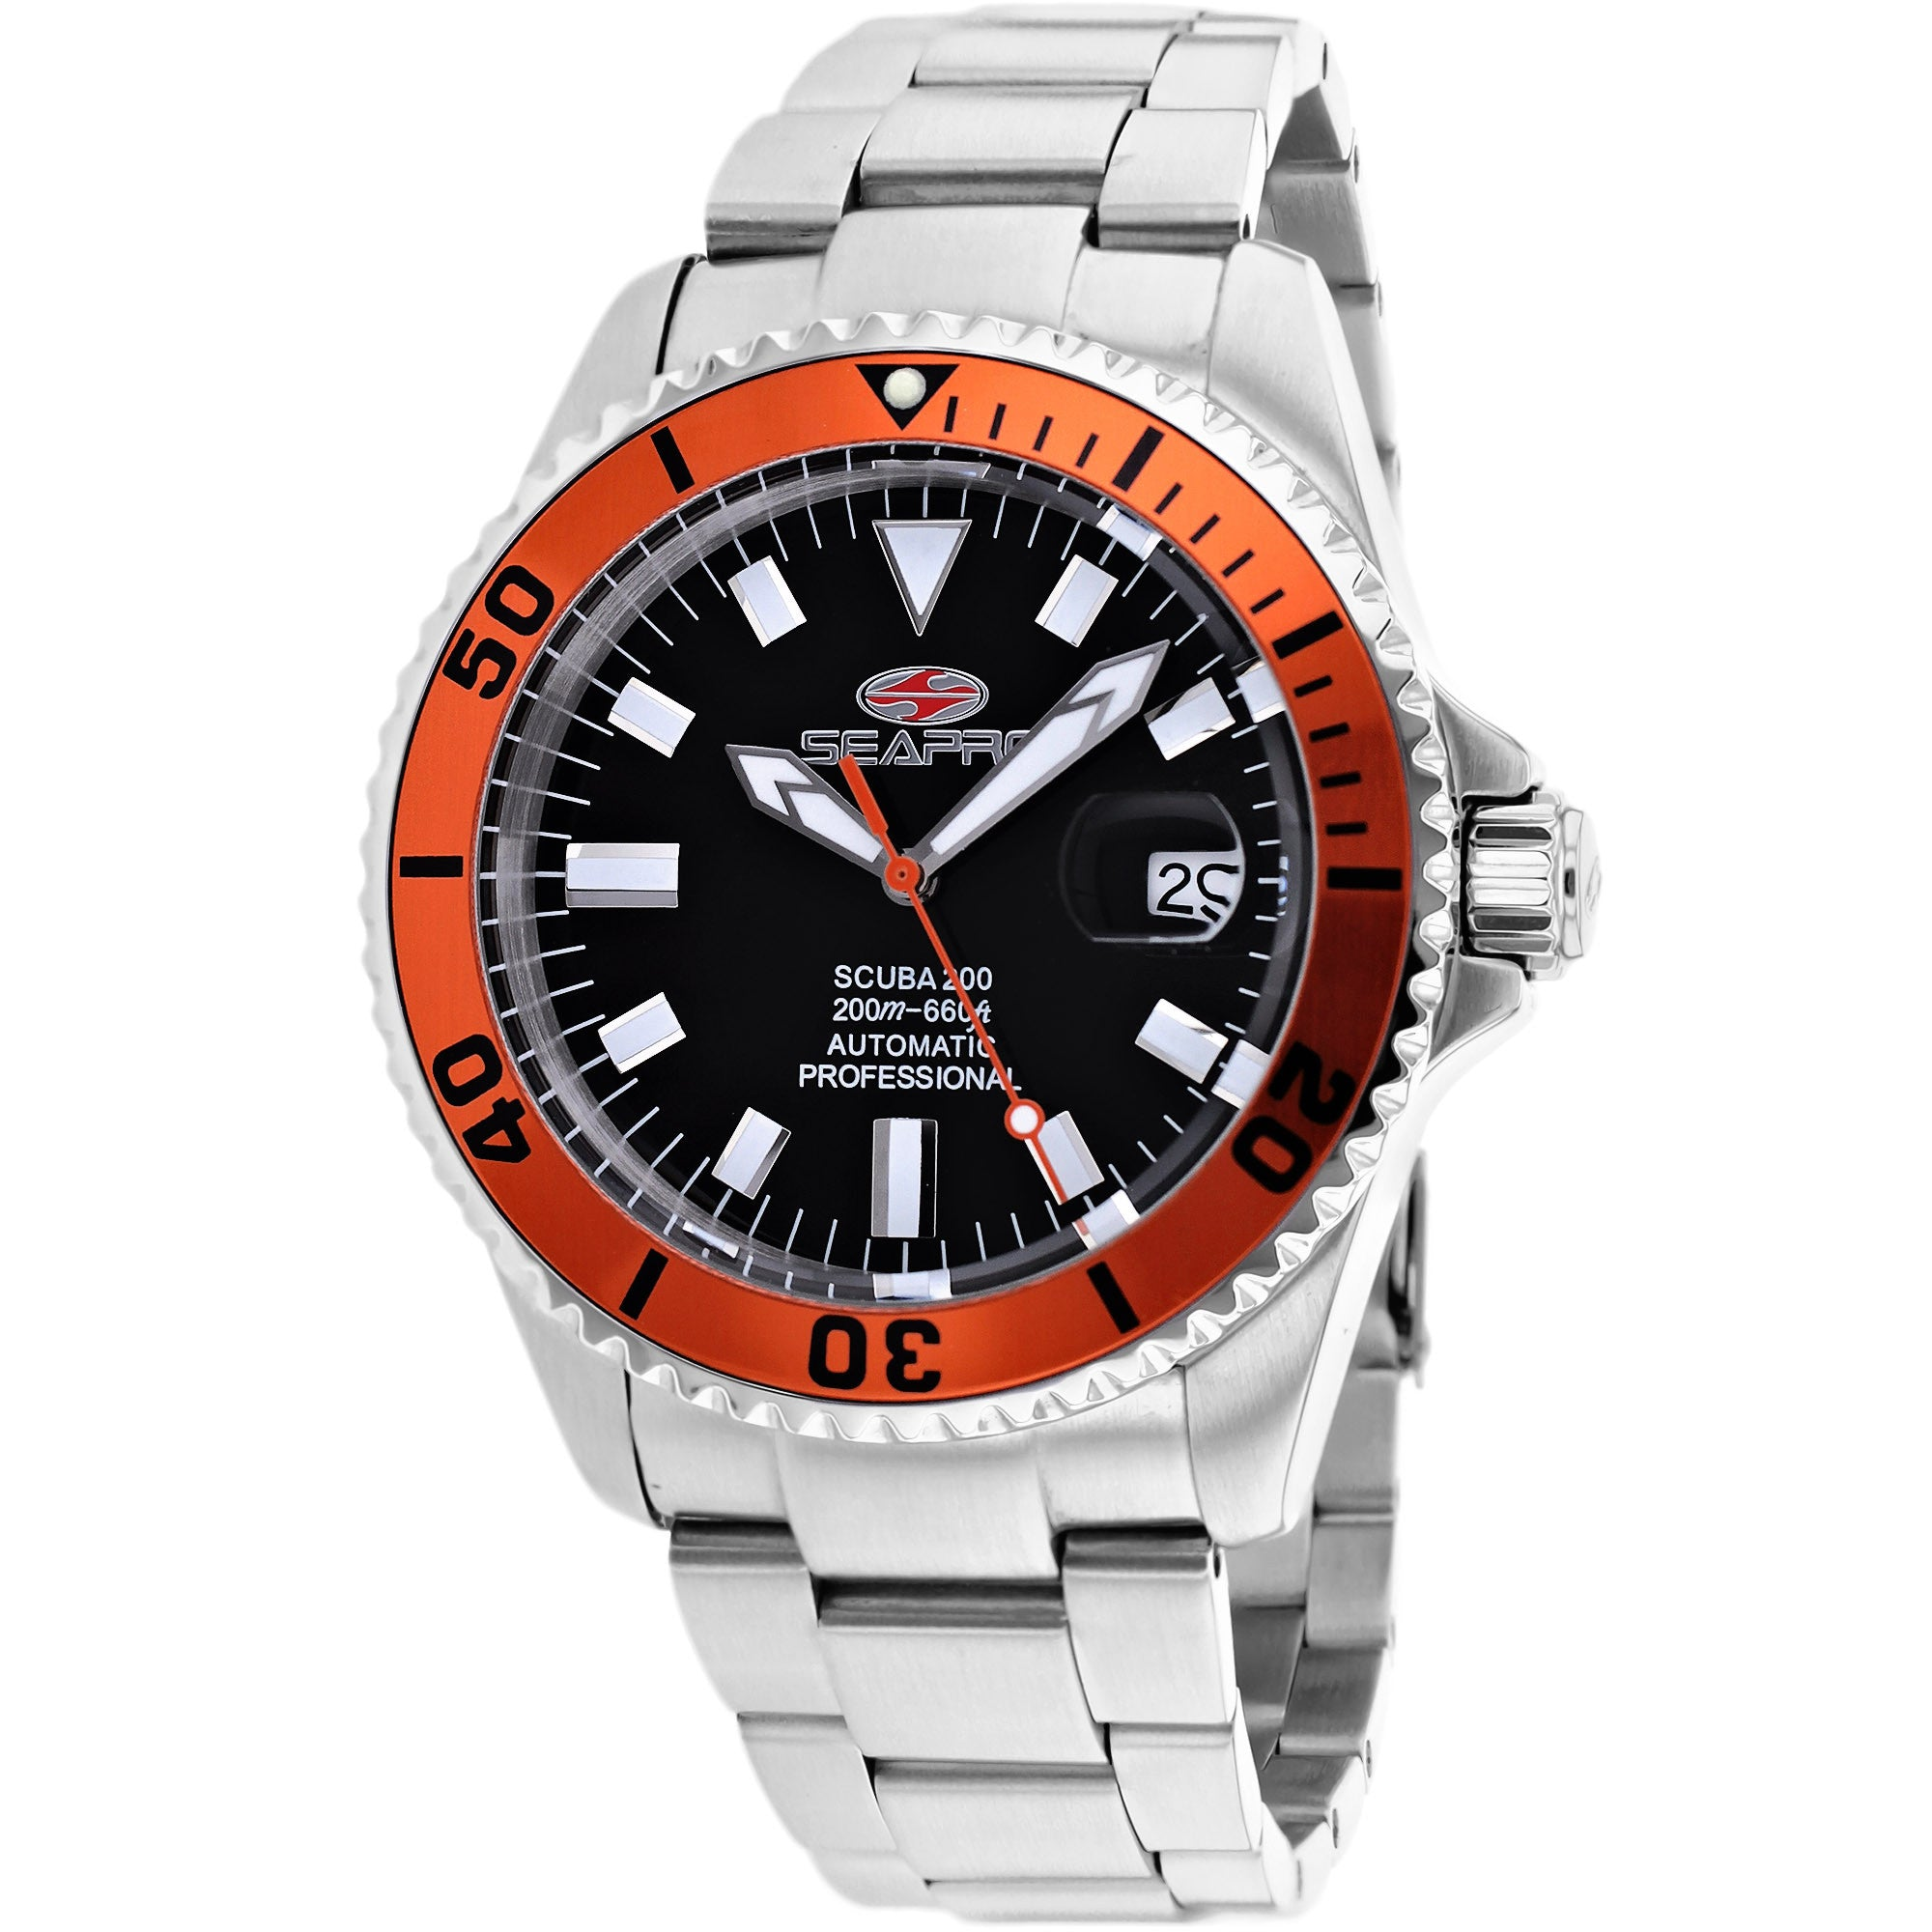 dive watch watches hands scuba abyssus page visconti on of